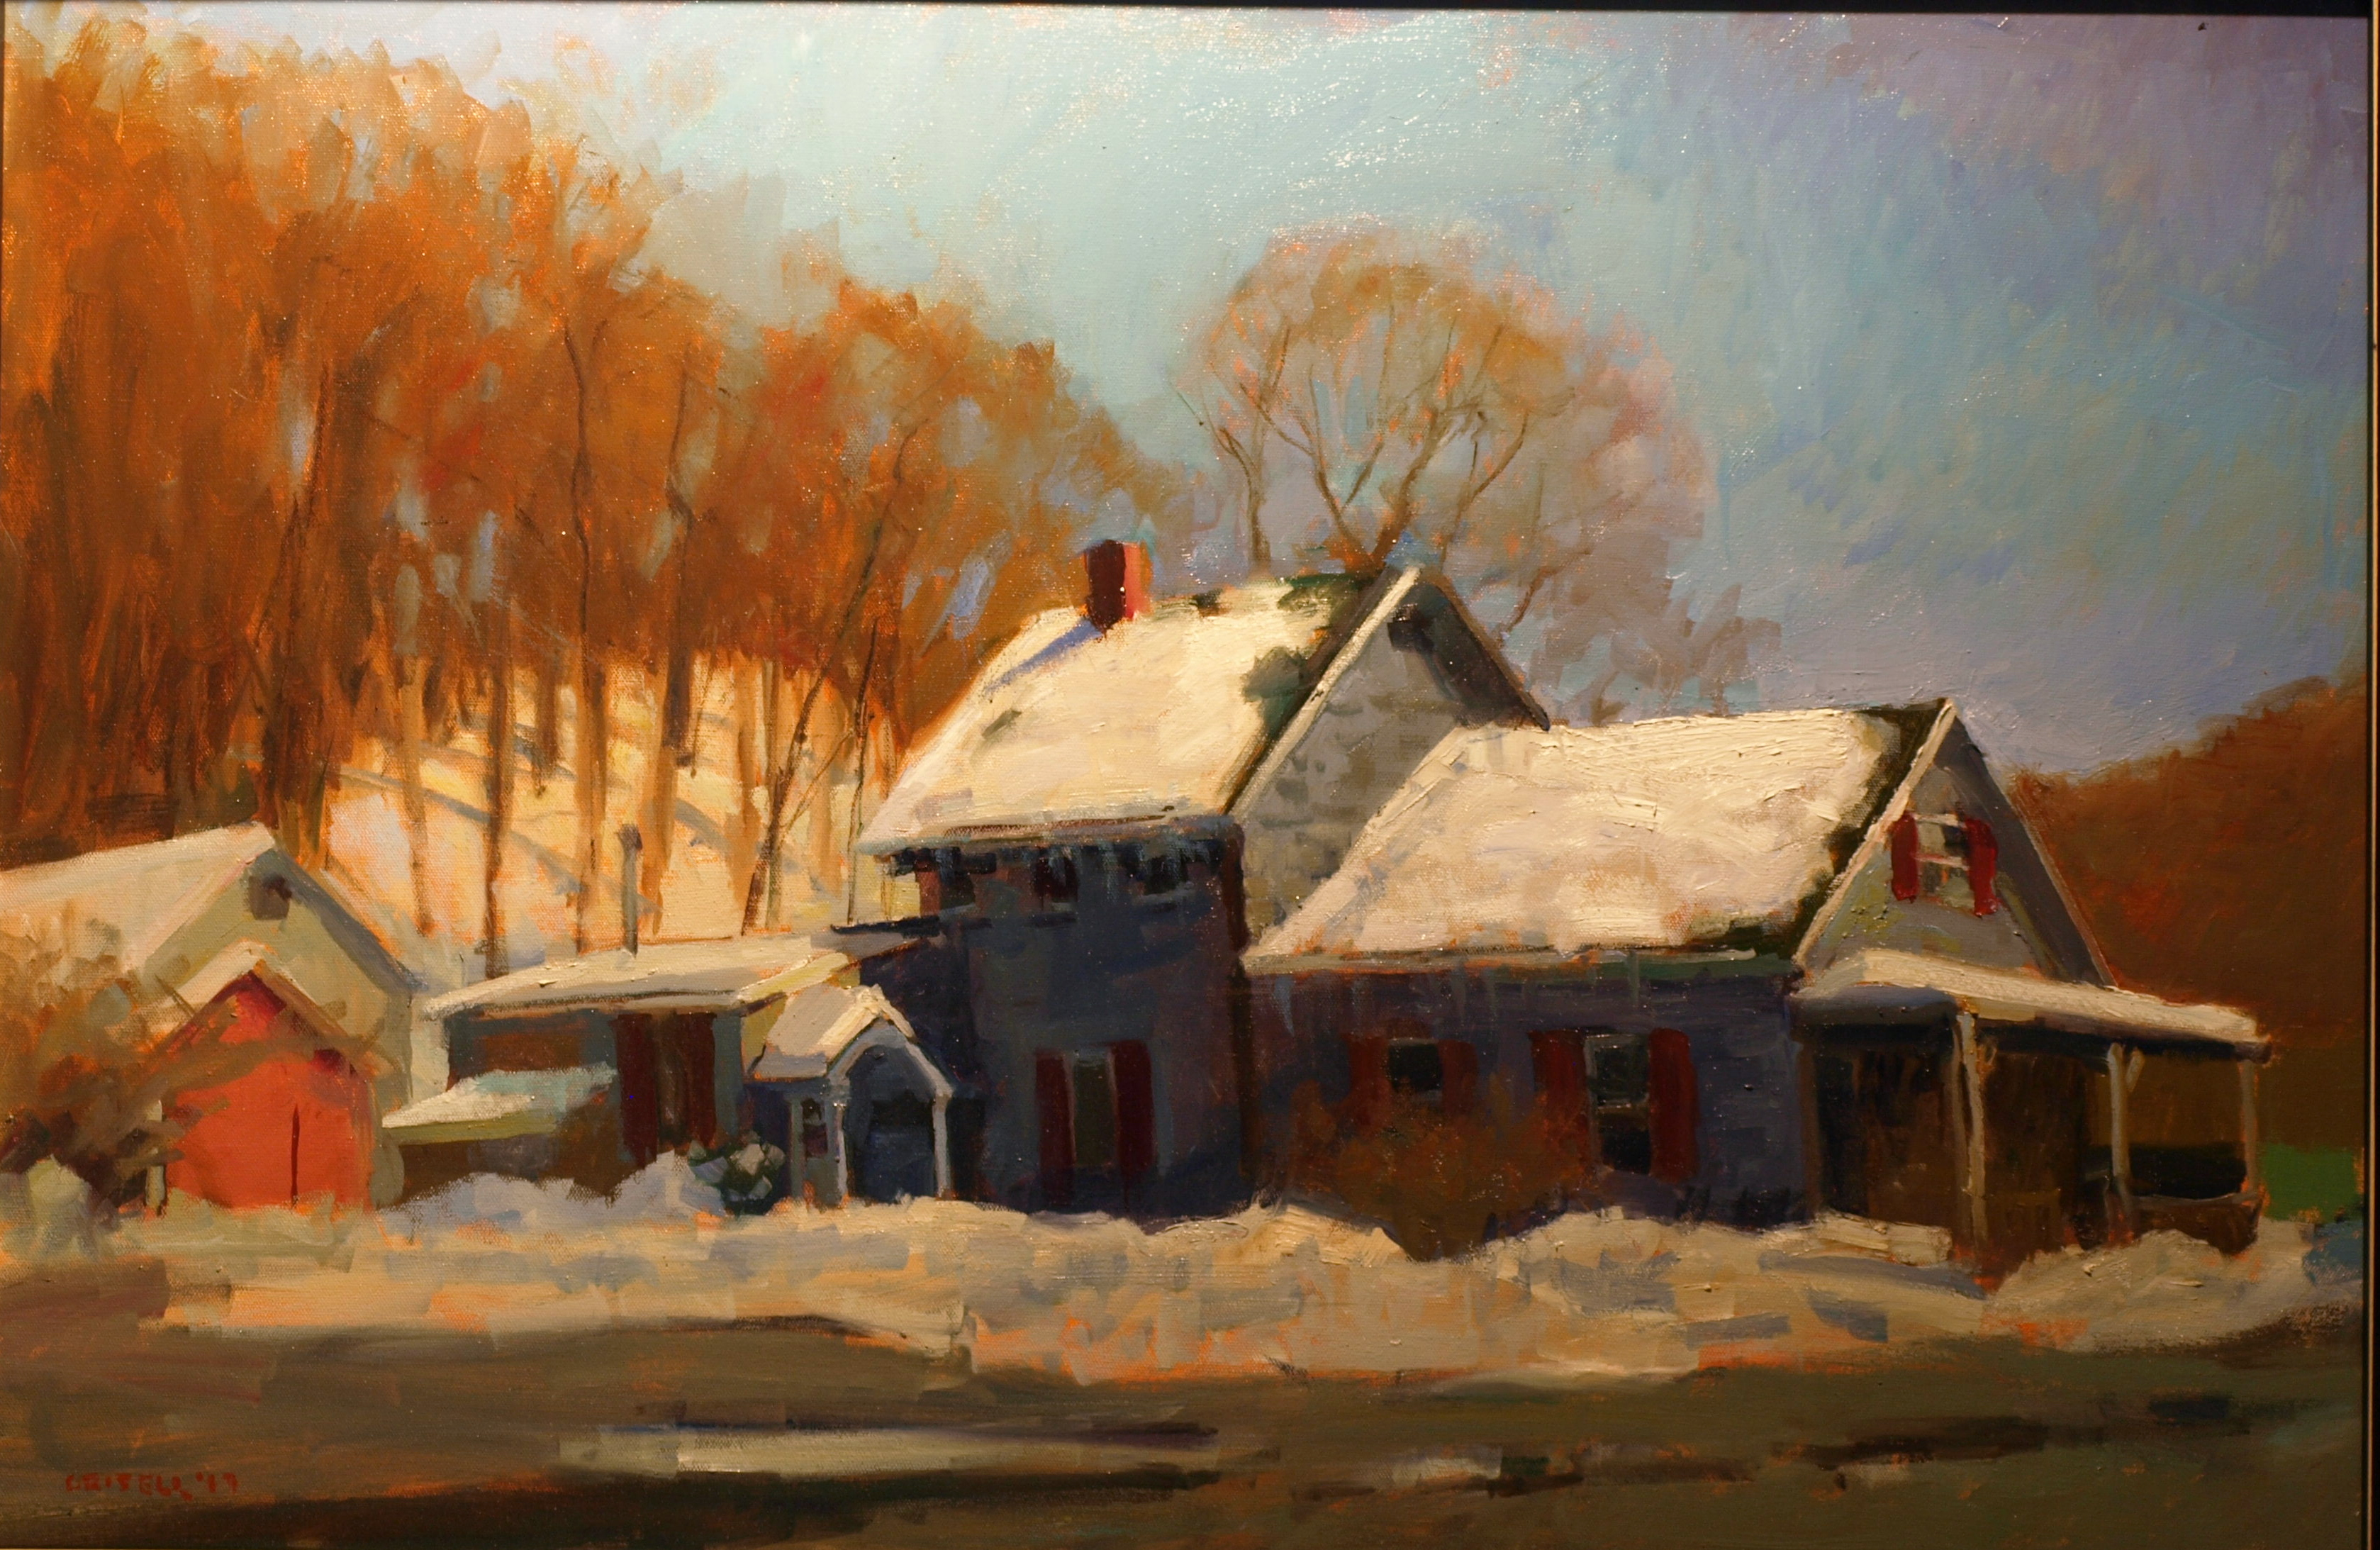 The Last Snow, Oil on Canvas, 24 x 36 Inches, by Susan Grisell, $1500